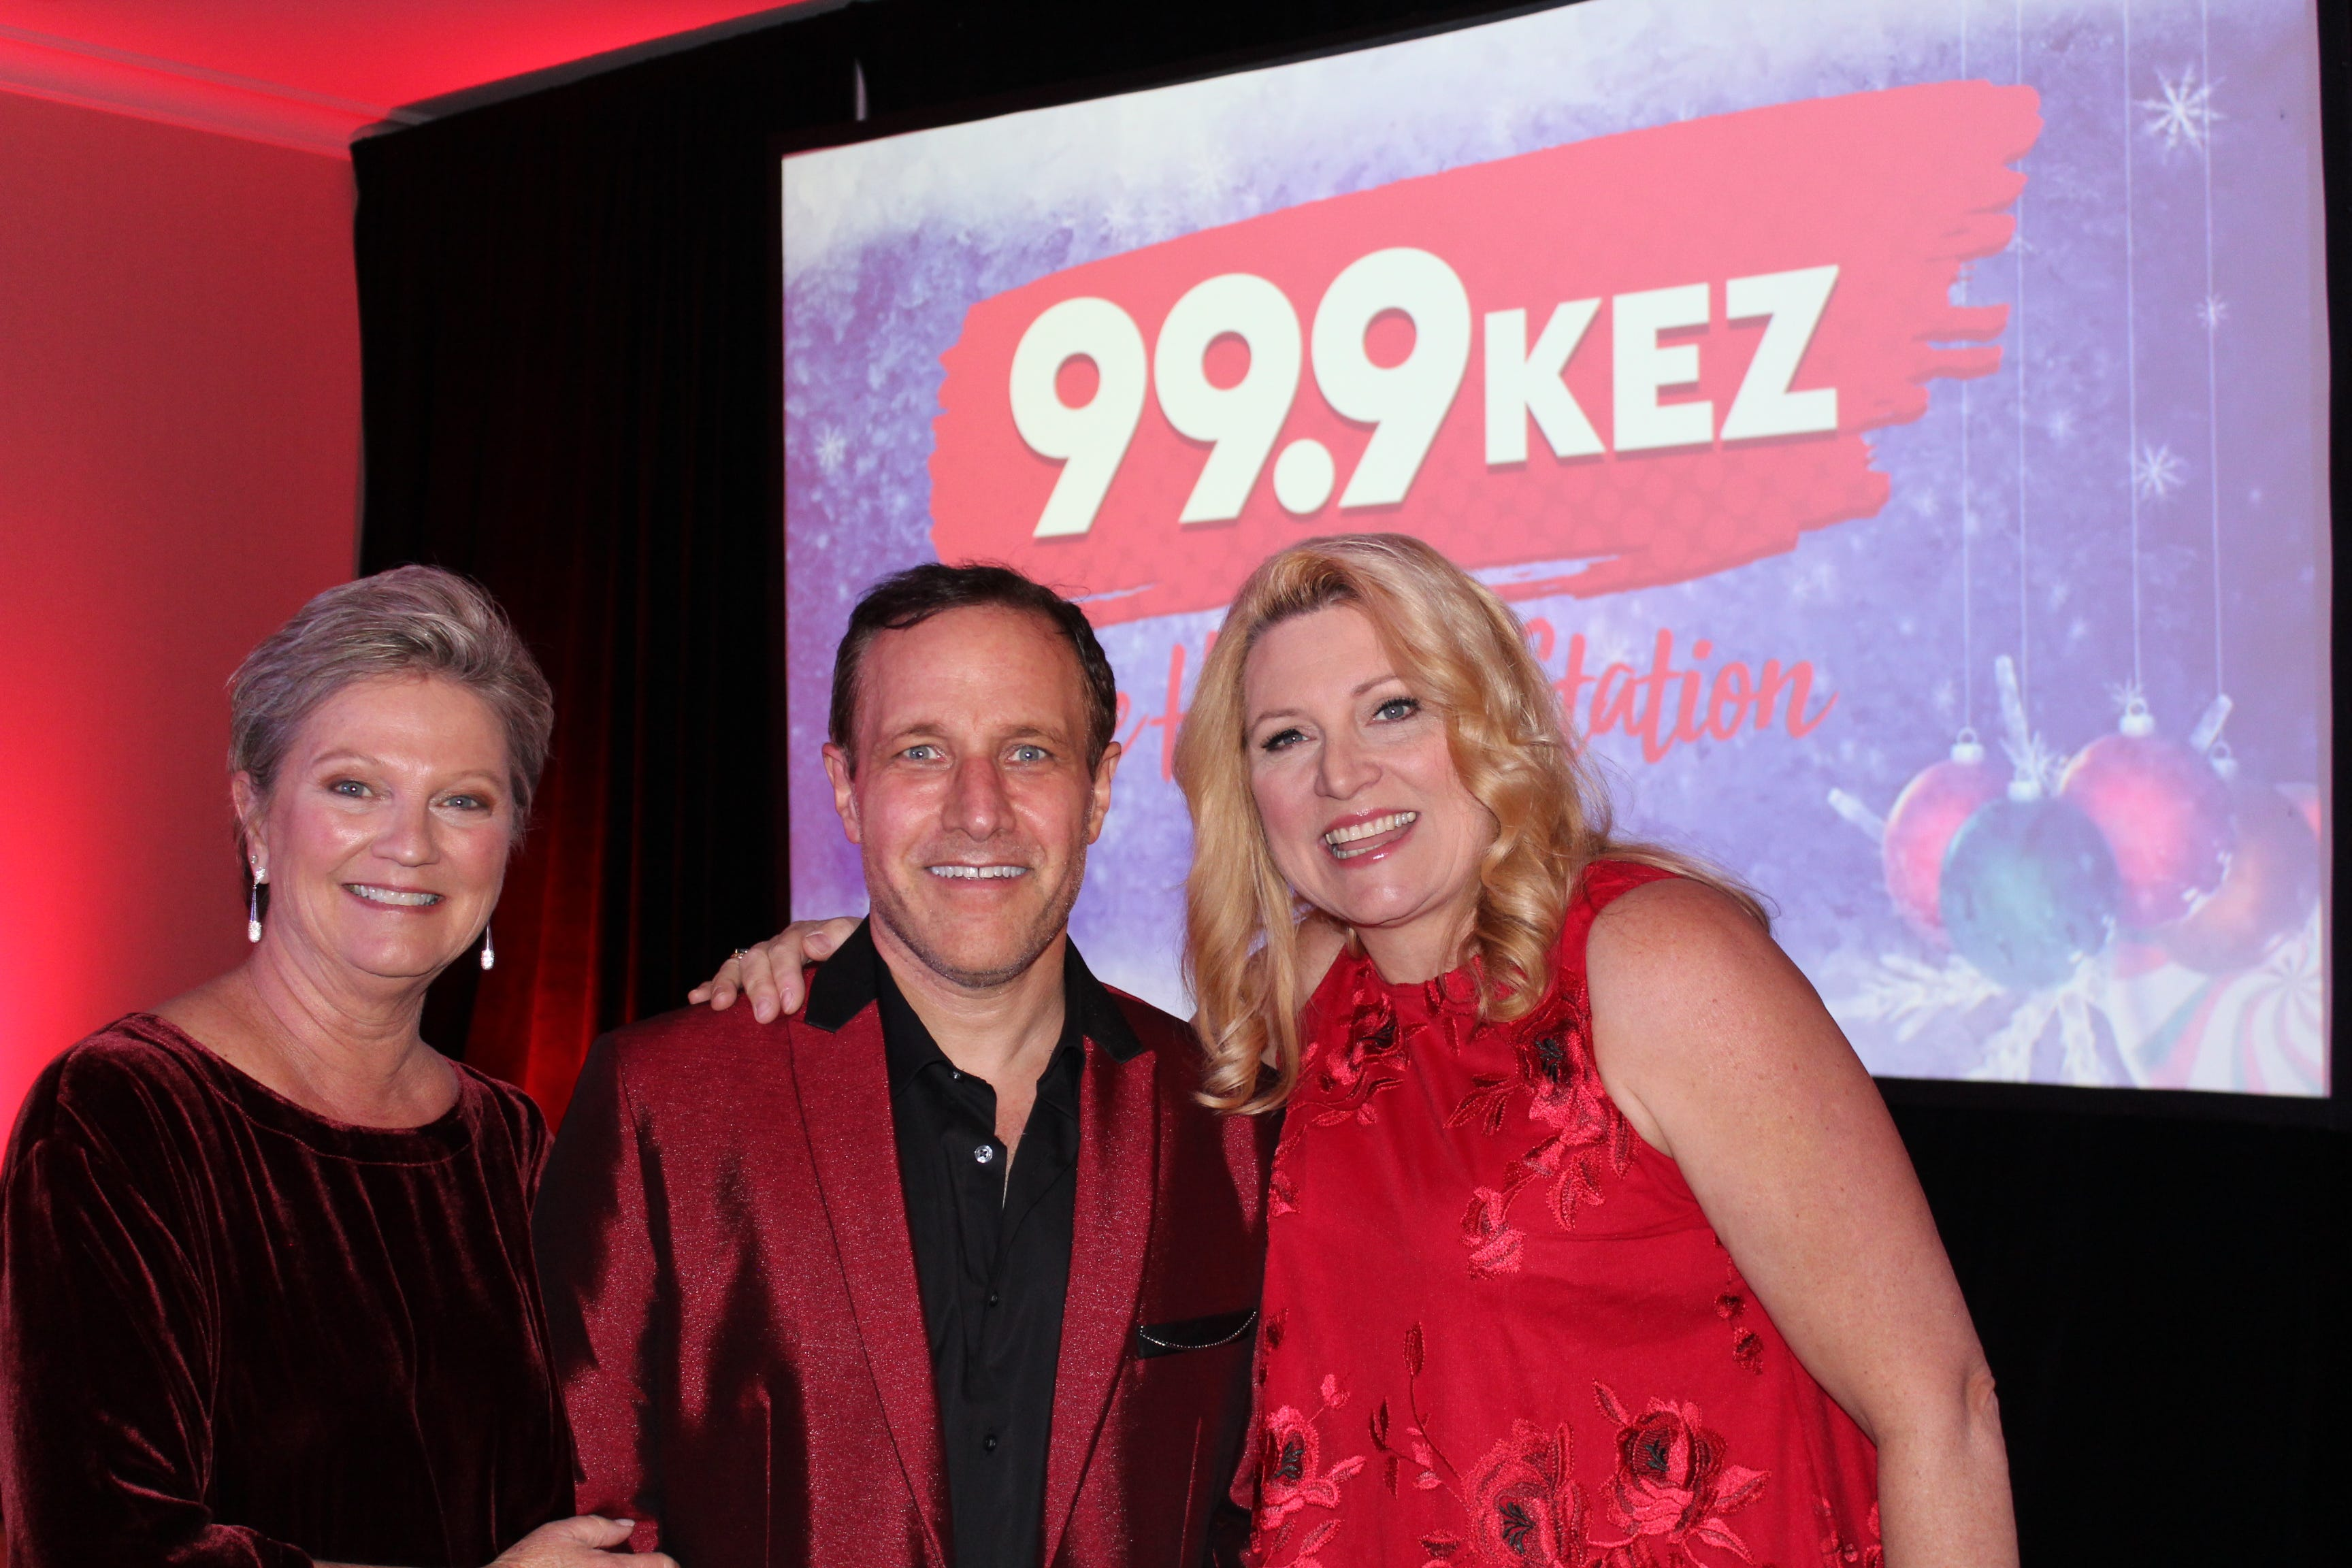 KEZ (99.9 FM) personality Beth McDonald (from left),